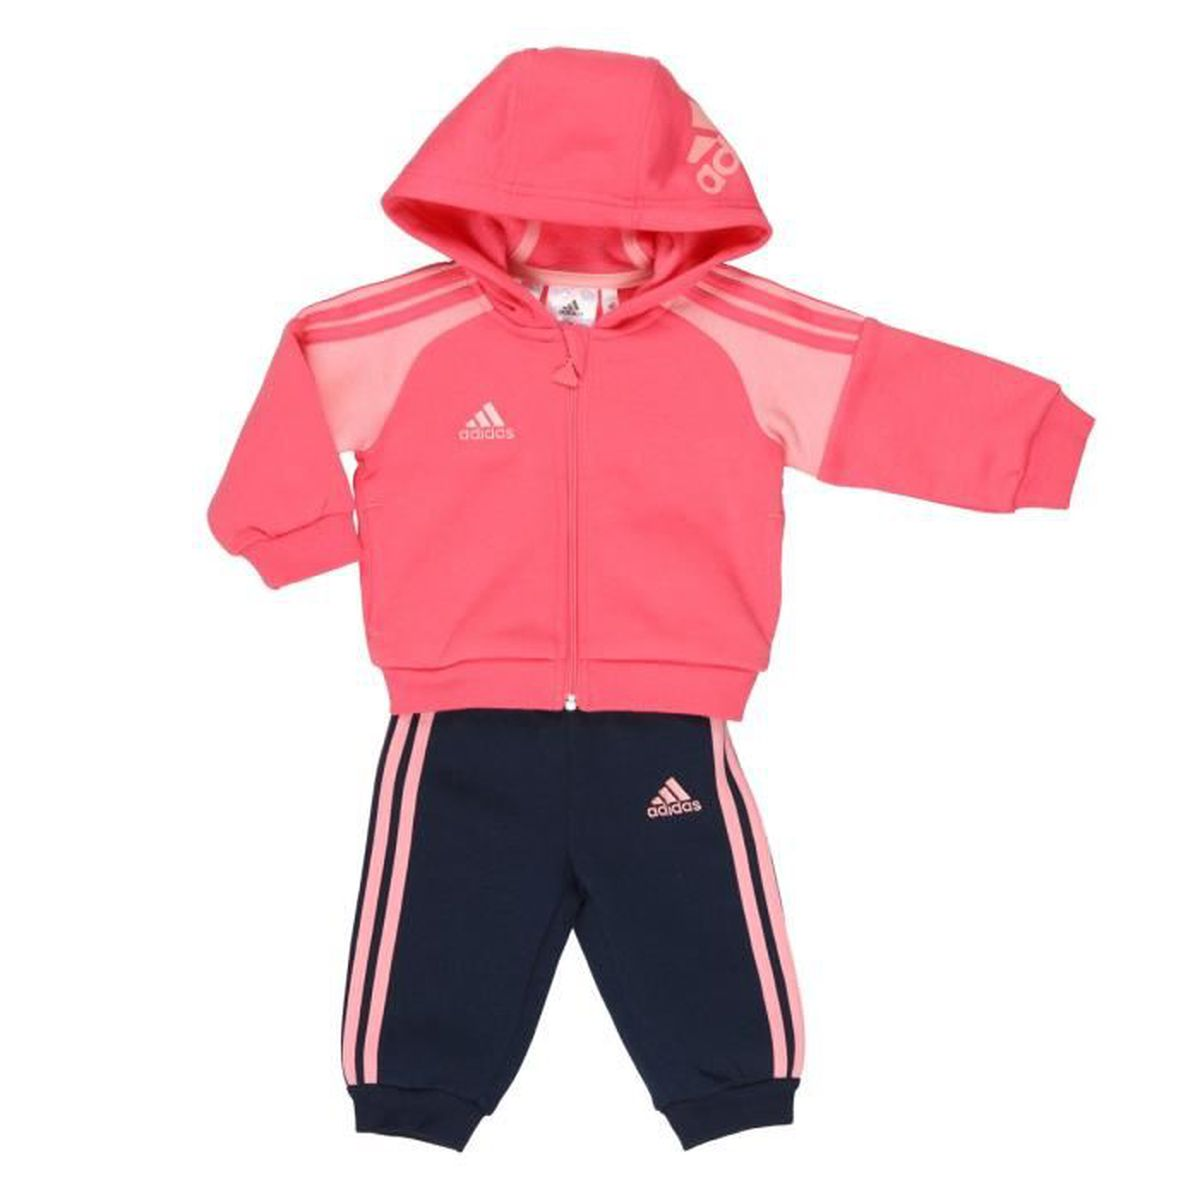 3811ea196dd0c adidas bebe fille survetement